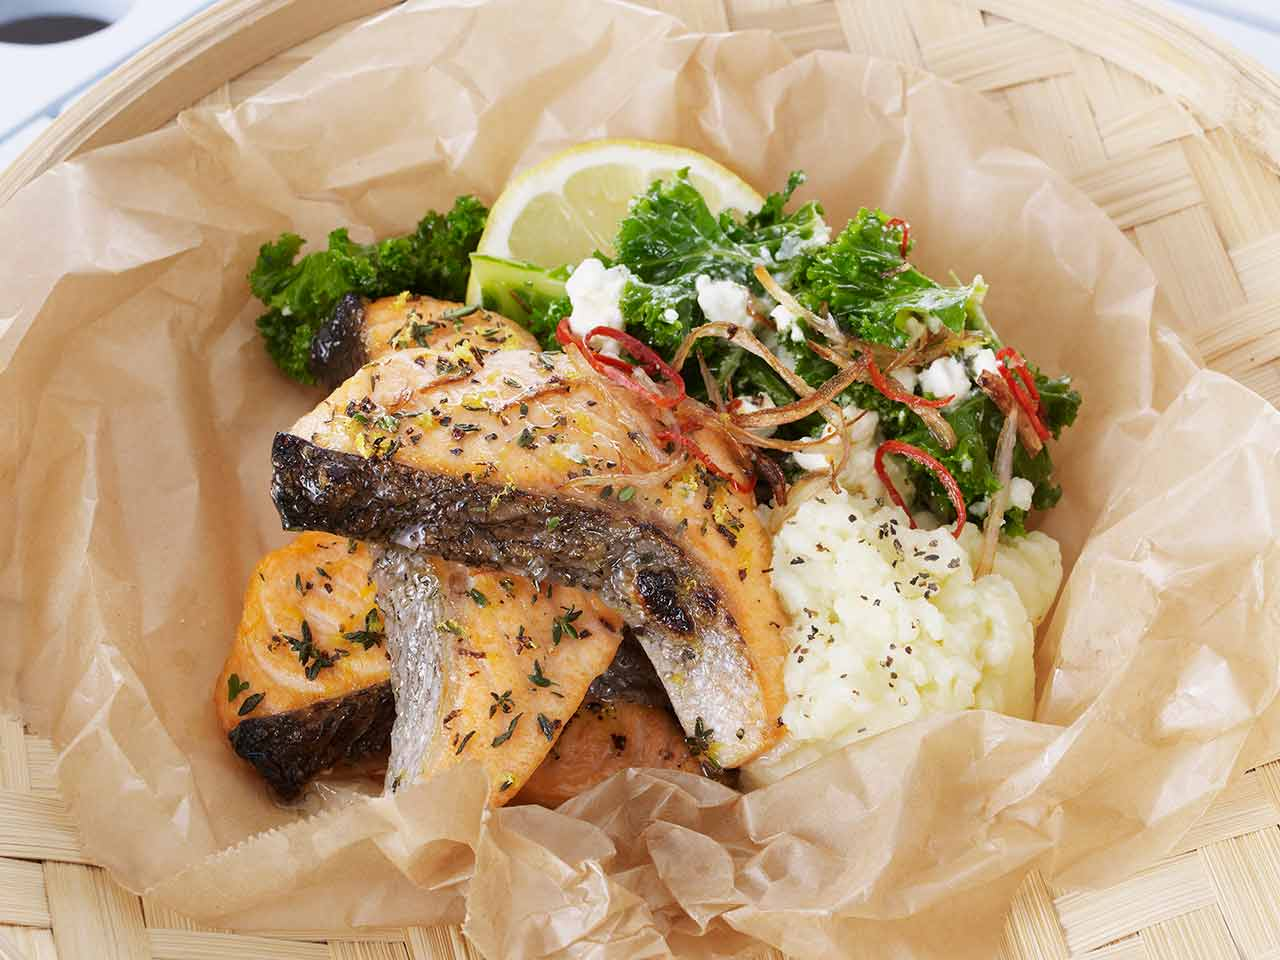 Lemon-and-thyme-glazed salmon